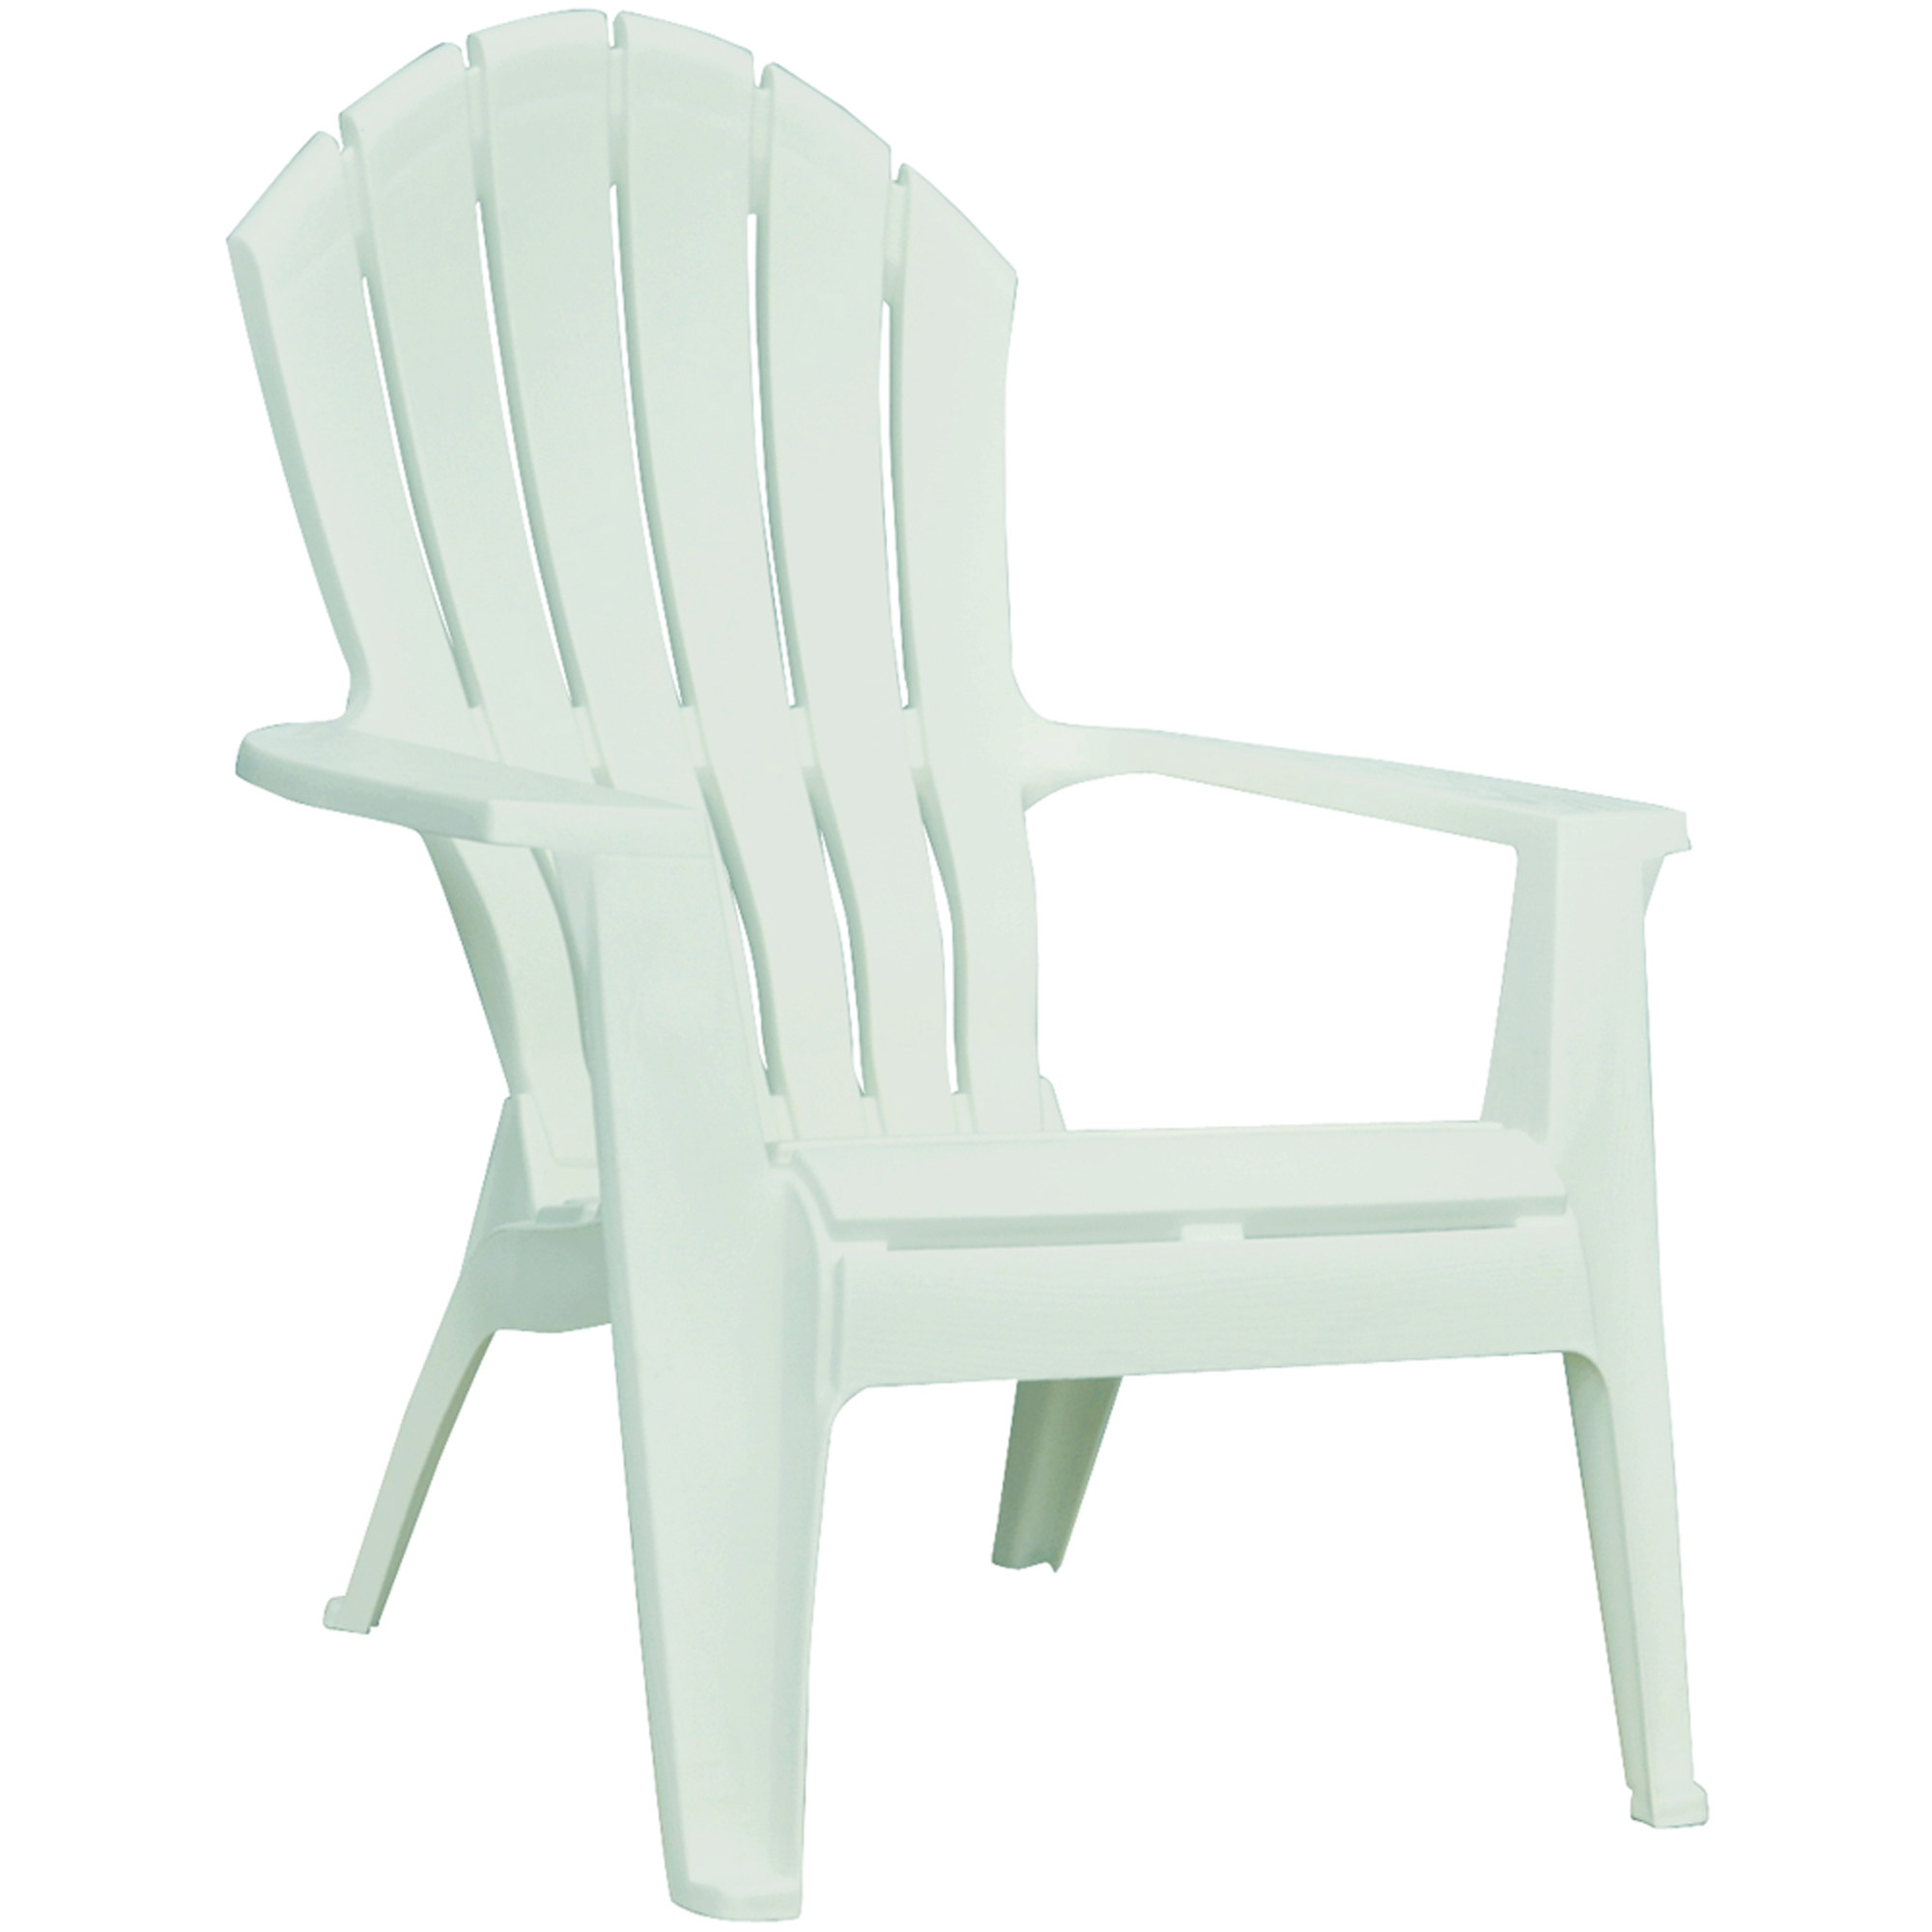 Real fort Adirondack Chair Walmart